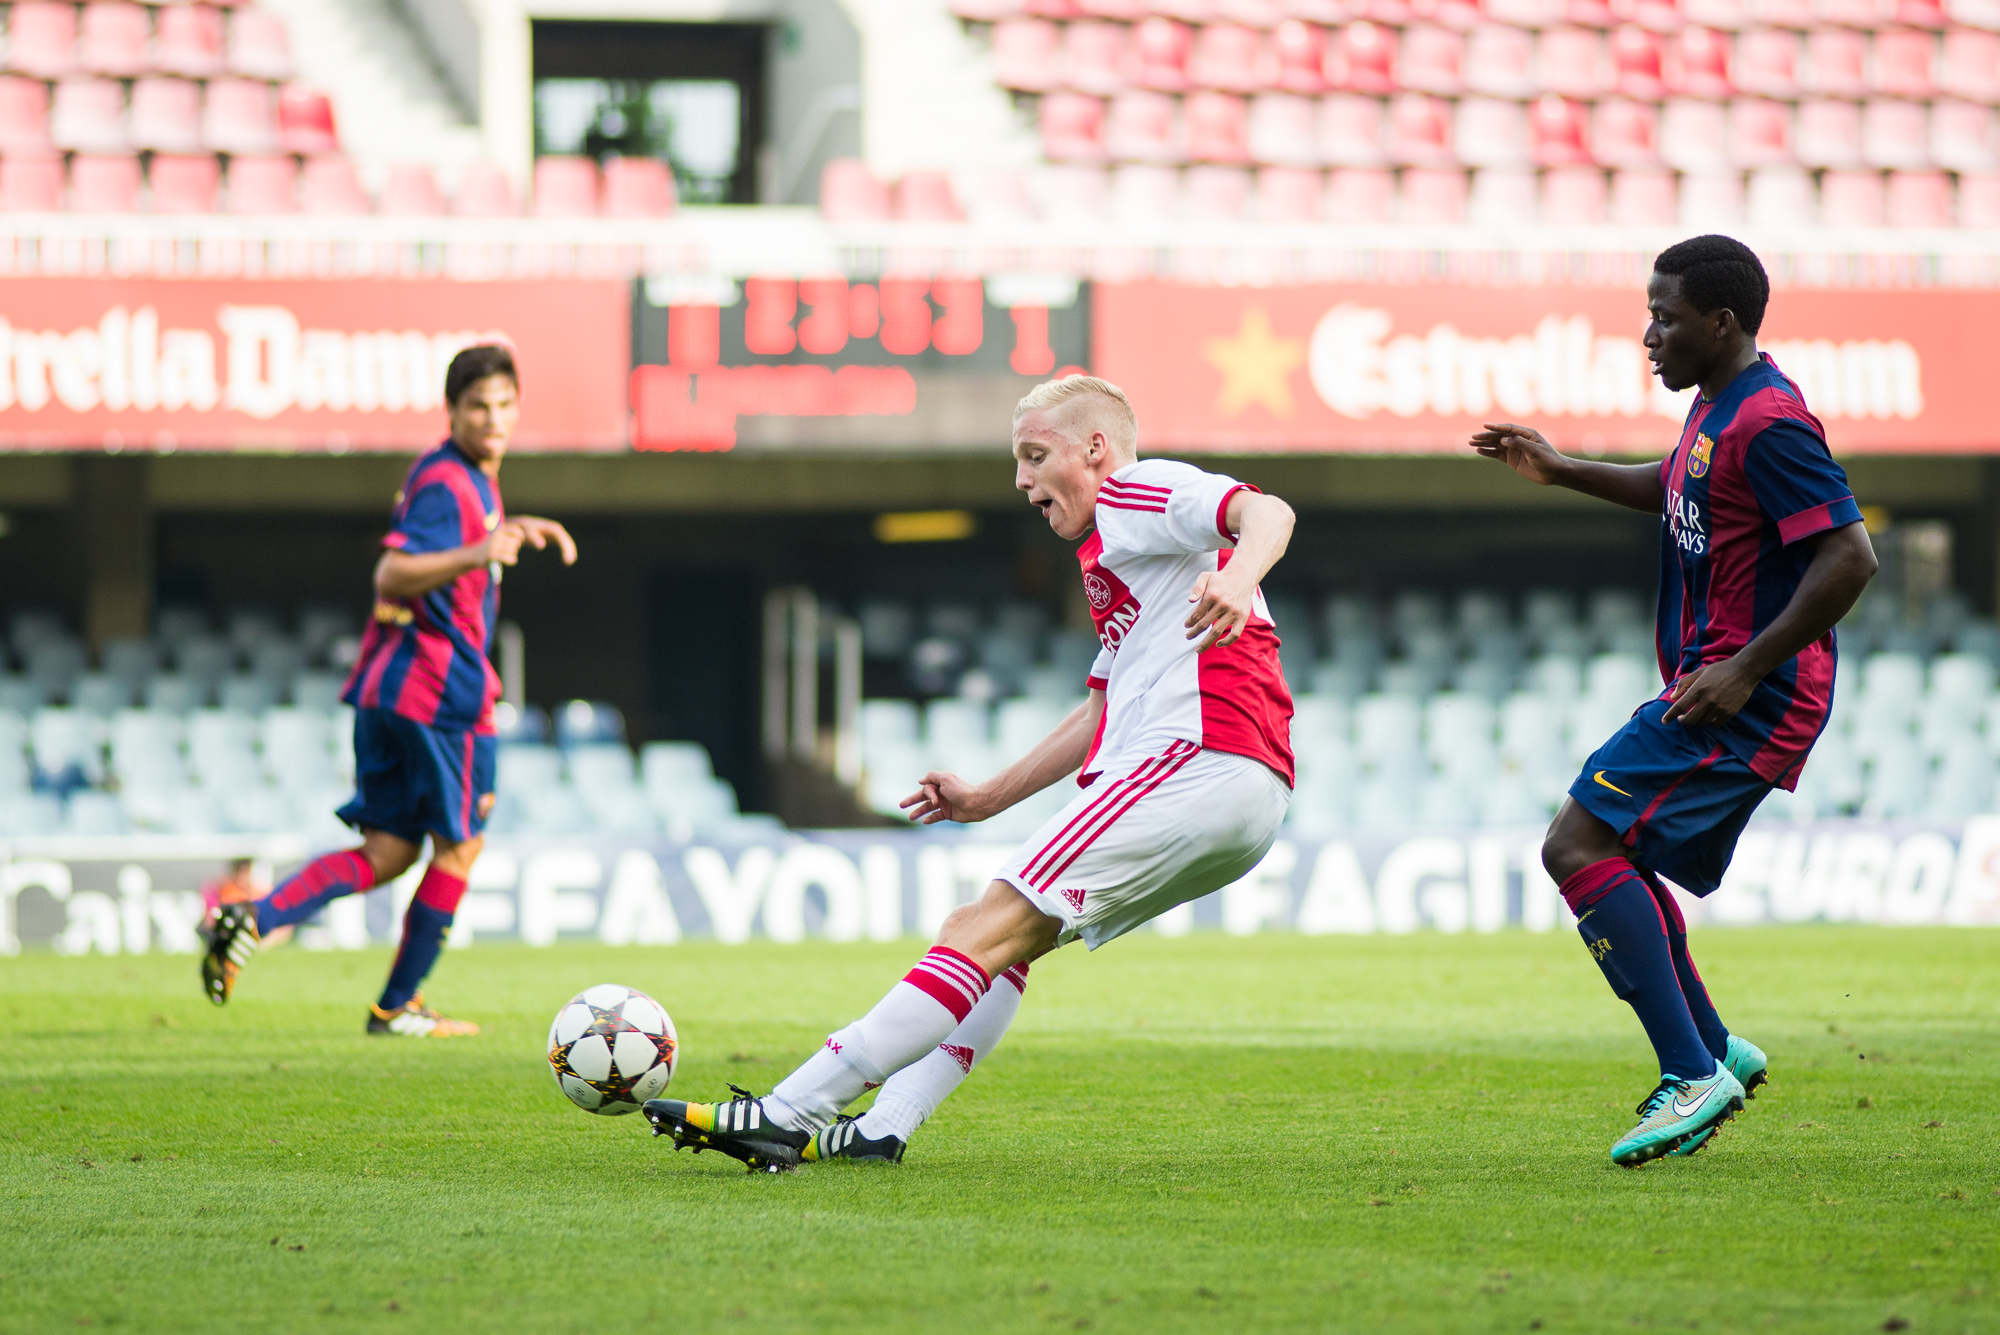 Van de Beek Youth League Ajax Eduardo Ferrer Alcover